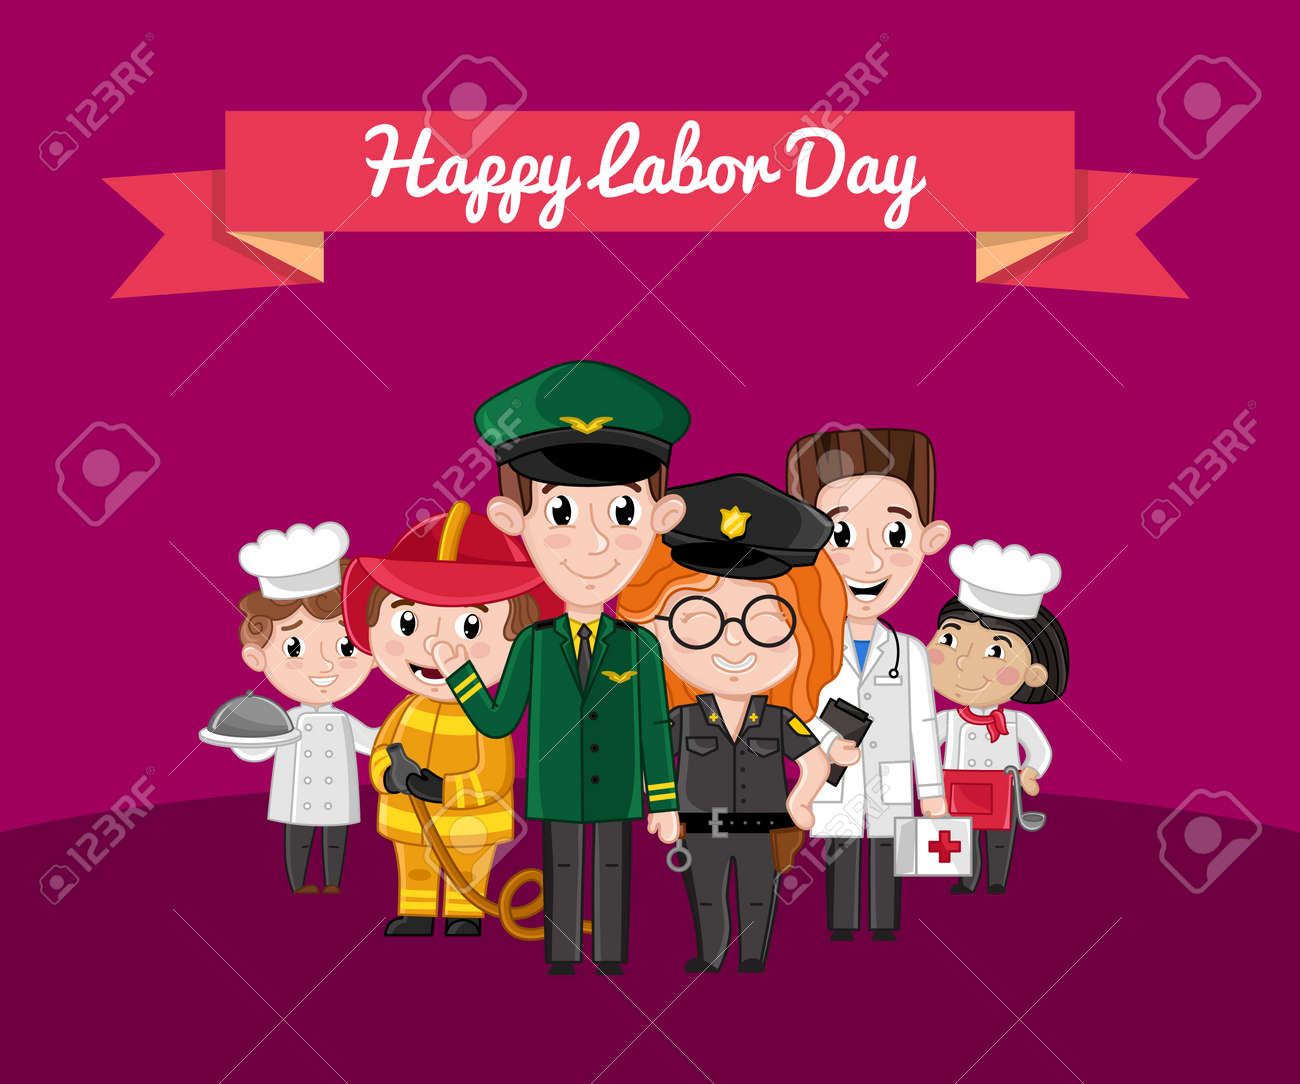 Happy labor day greeting card with children kids in professional happy labor day greeting card with children kids in professional costumes of cook doctor m4hsunfo